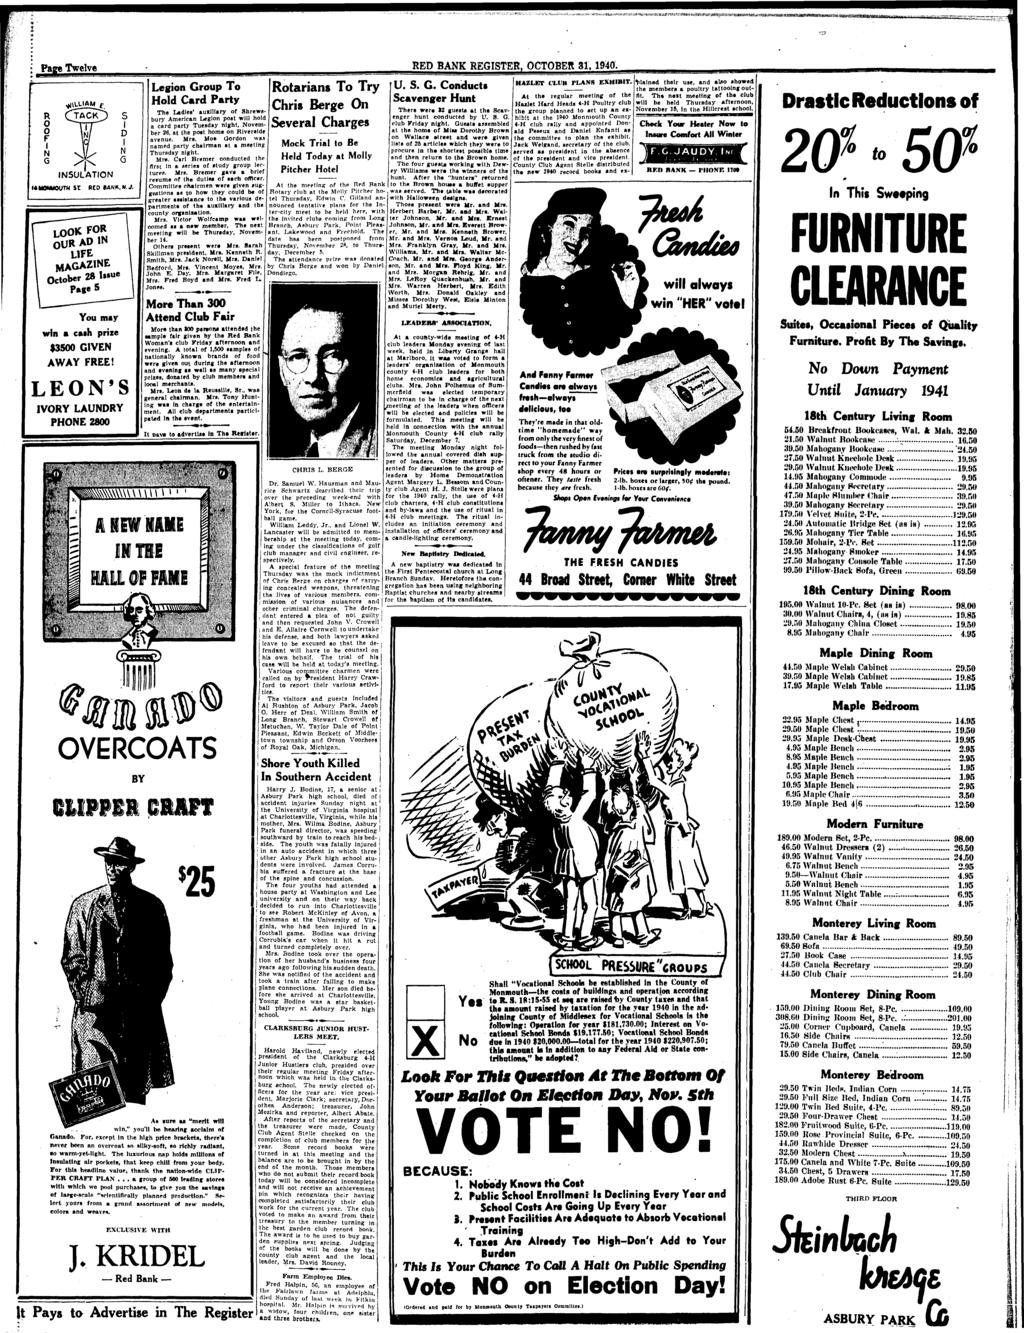 Page Twelve RED BANK REGISTER, OCTOBER 31, 1940. INSULATION S I D I N G I4M0NM0UTH St RED BANK, N. J. MAGAZINE October 28 You may win a cash prize $3500 GIVEN AWAY FREE!